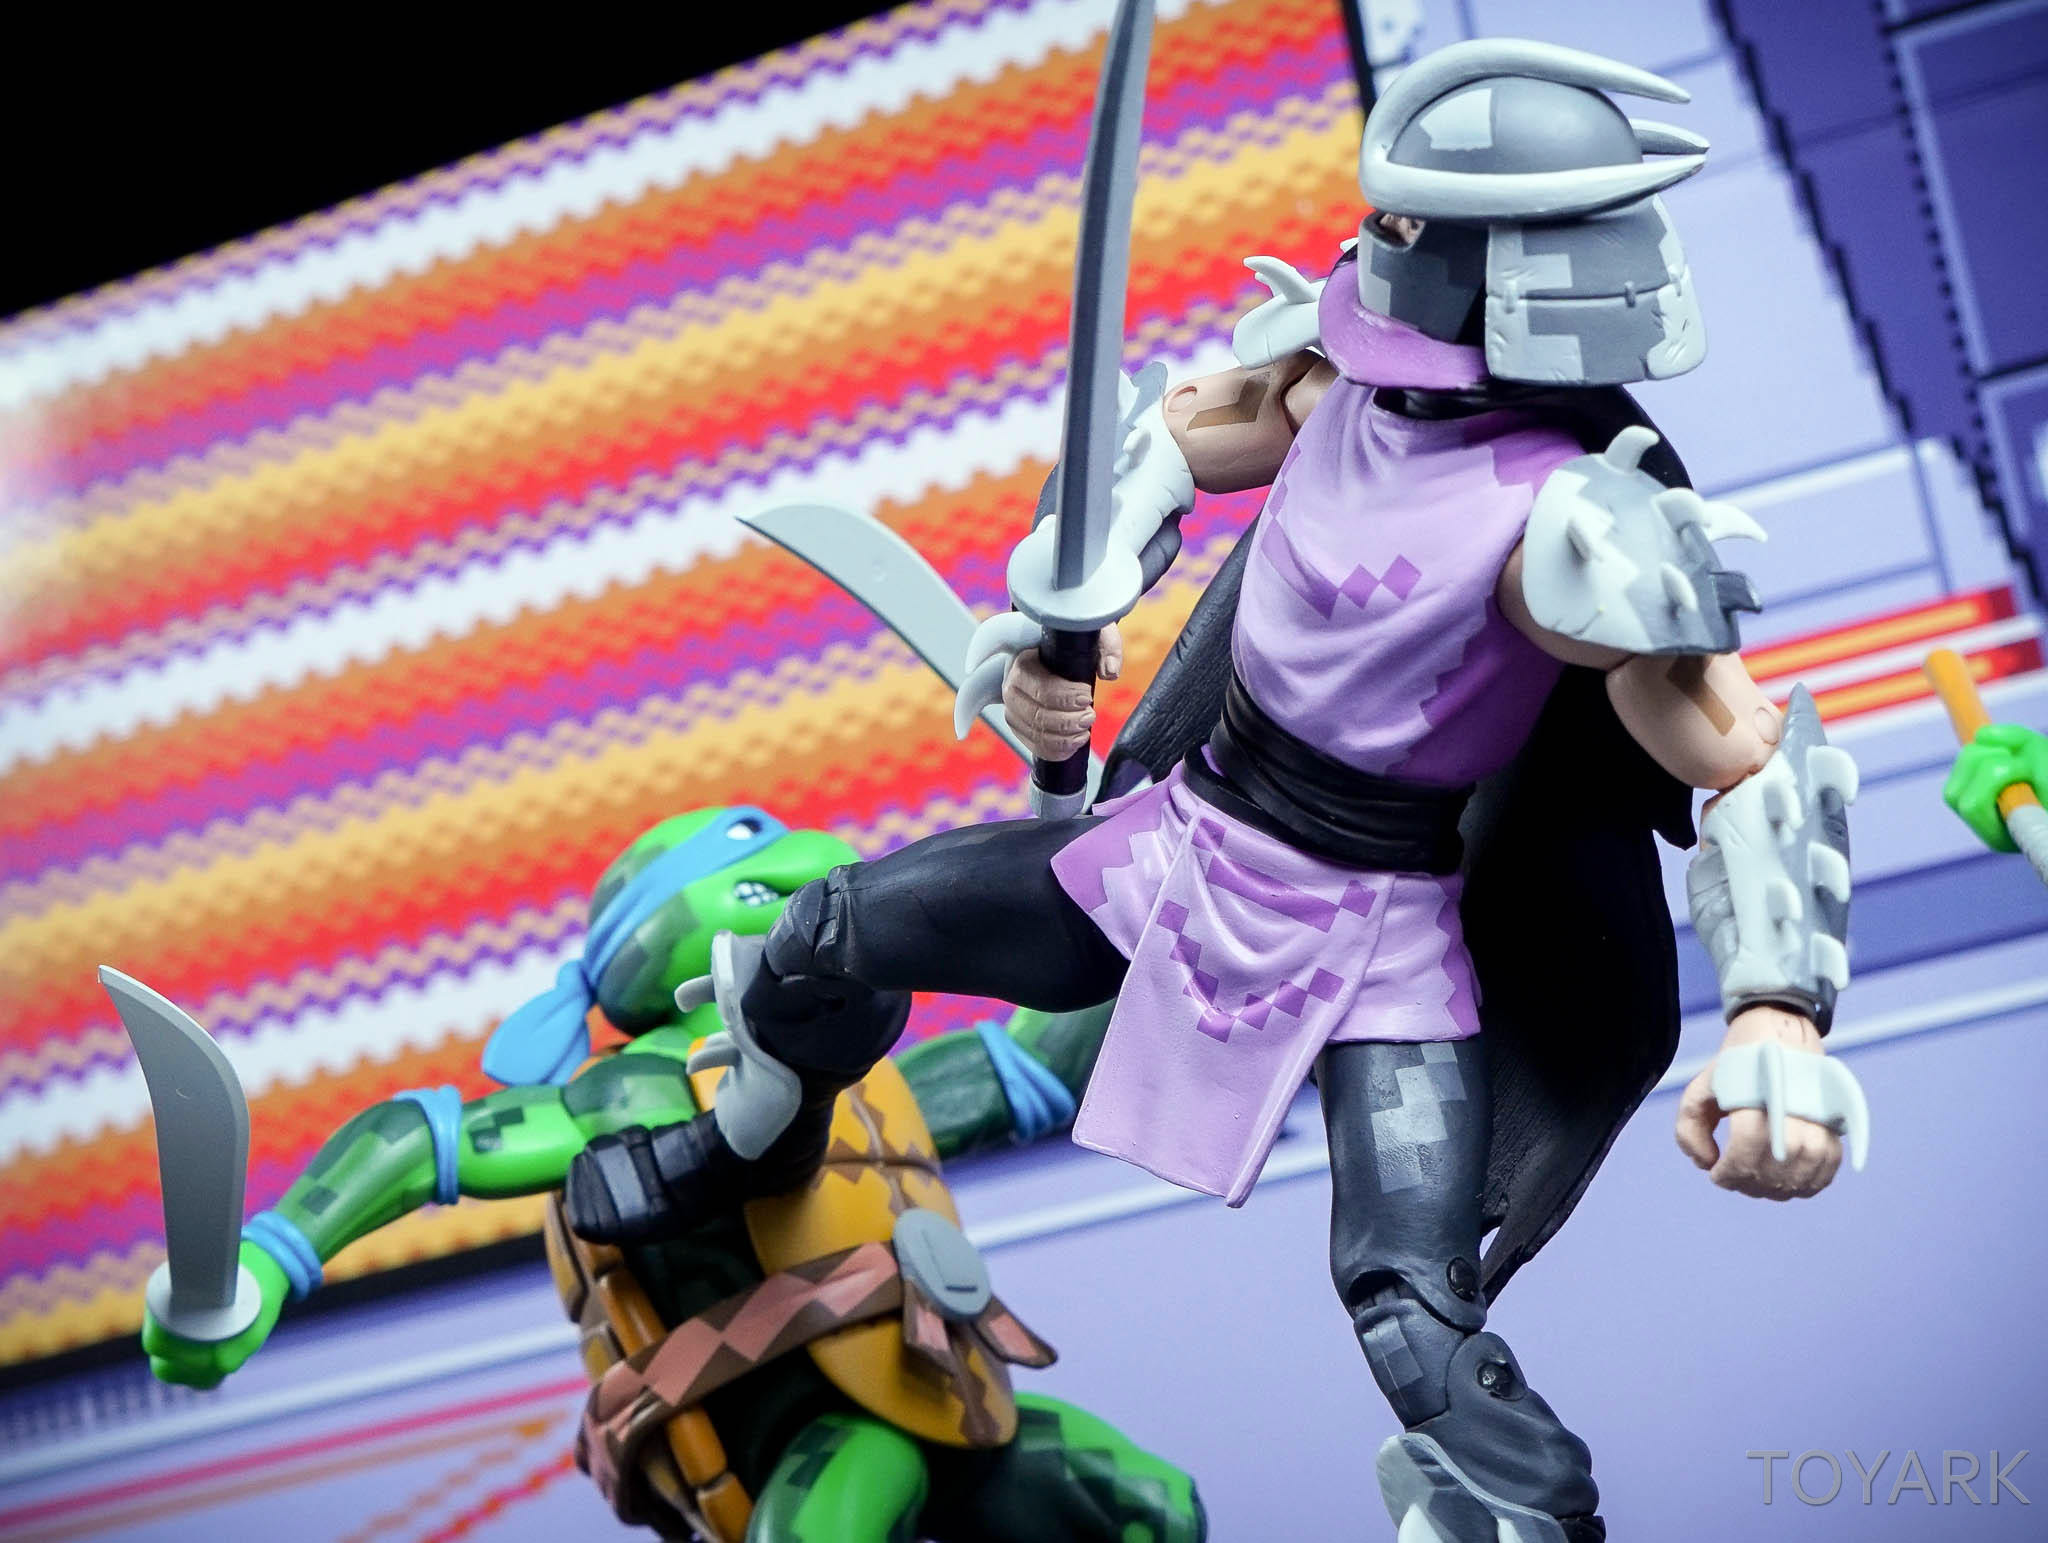 http://news.toyark.com/wp-content/uploads/sites/4/2016/08/SDCC2016-TMNT-Arcade-201.jpg